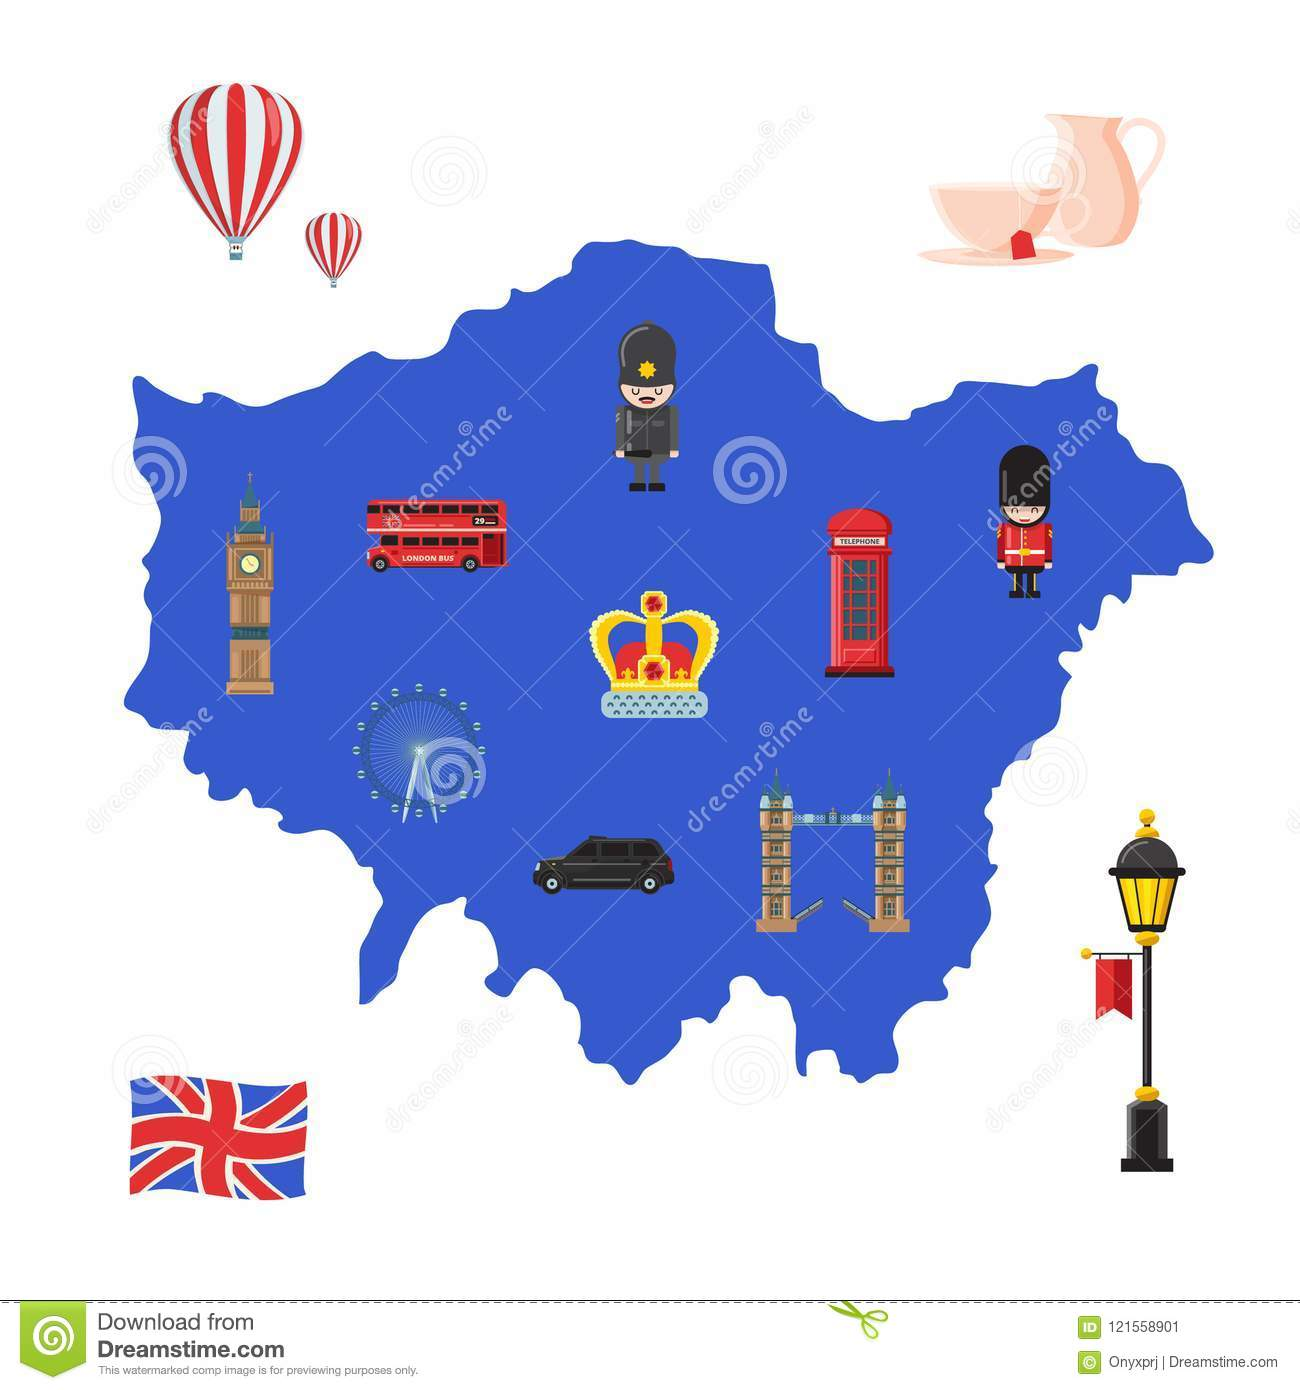 London Map With Sights.Vector London Sights Stock Vector Illustration Of Drawn 121558901